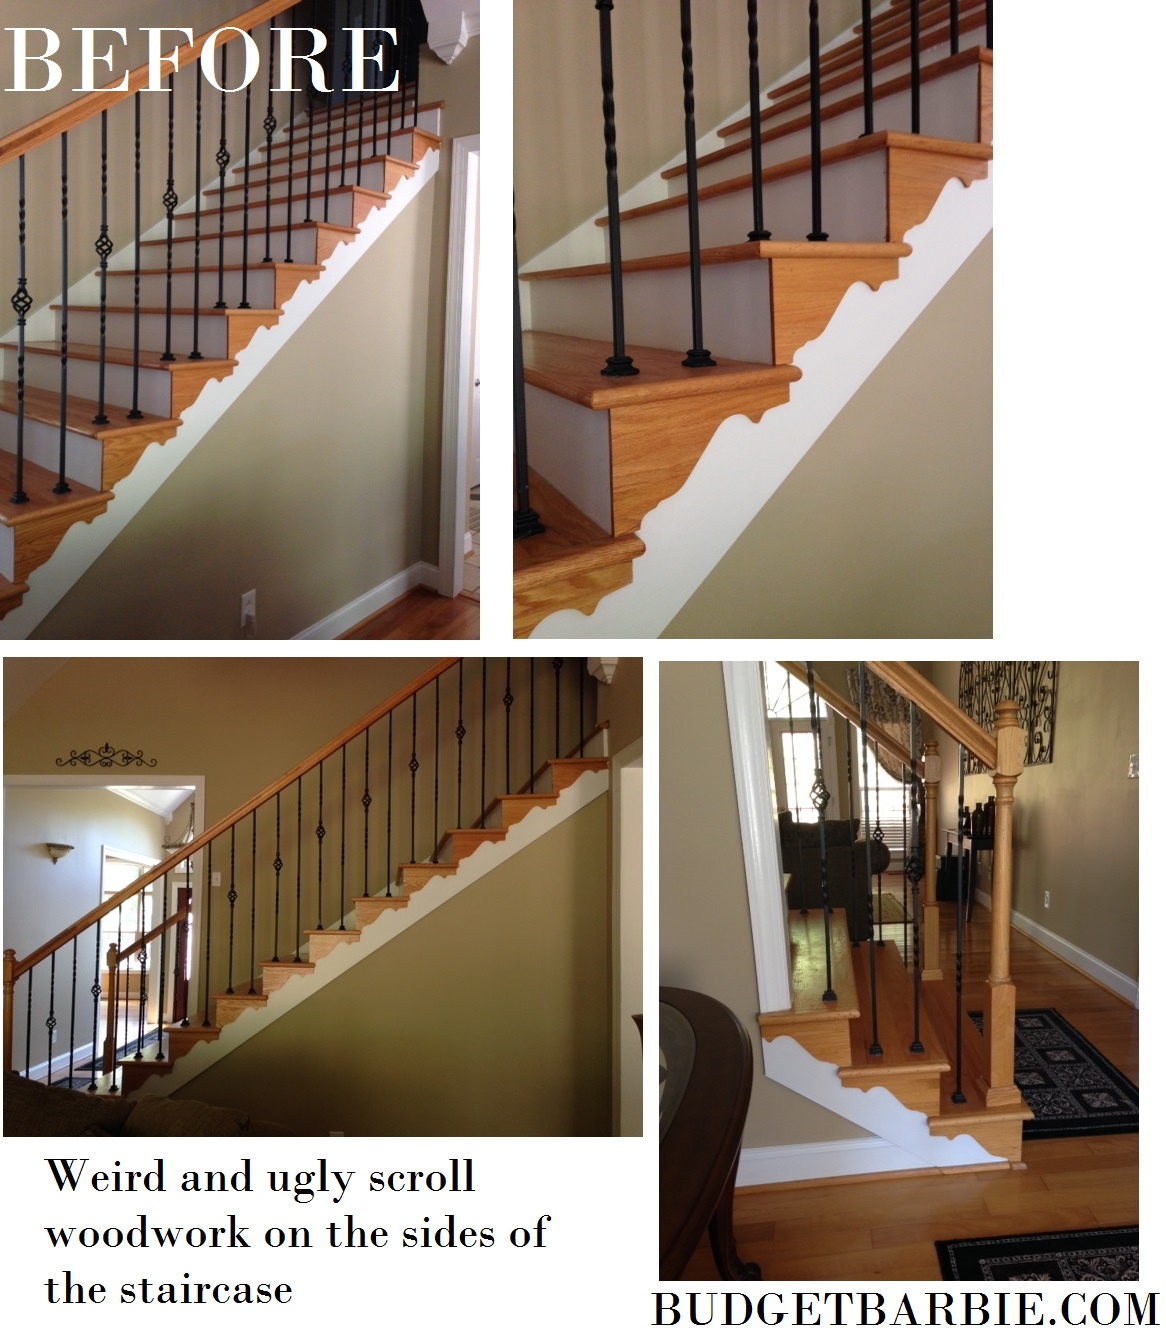 William S Woodworks Wood Stairs: Budget Barbie: The Next Project: Let It Begin! Removing